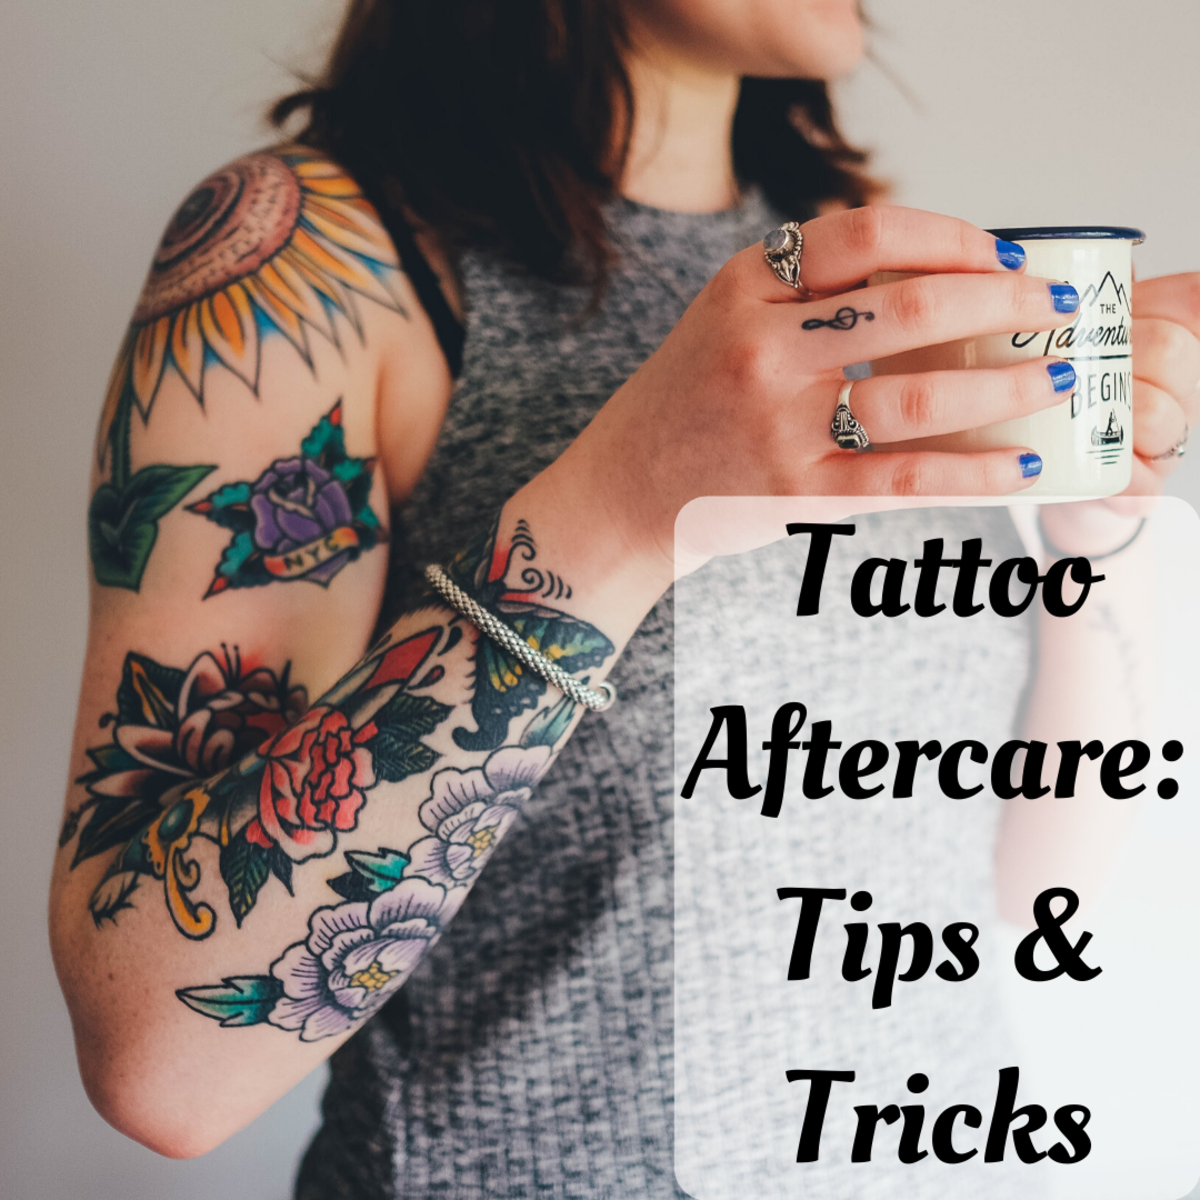 Read on to learn all about aftercare tips for your tattoo.